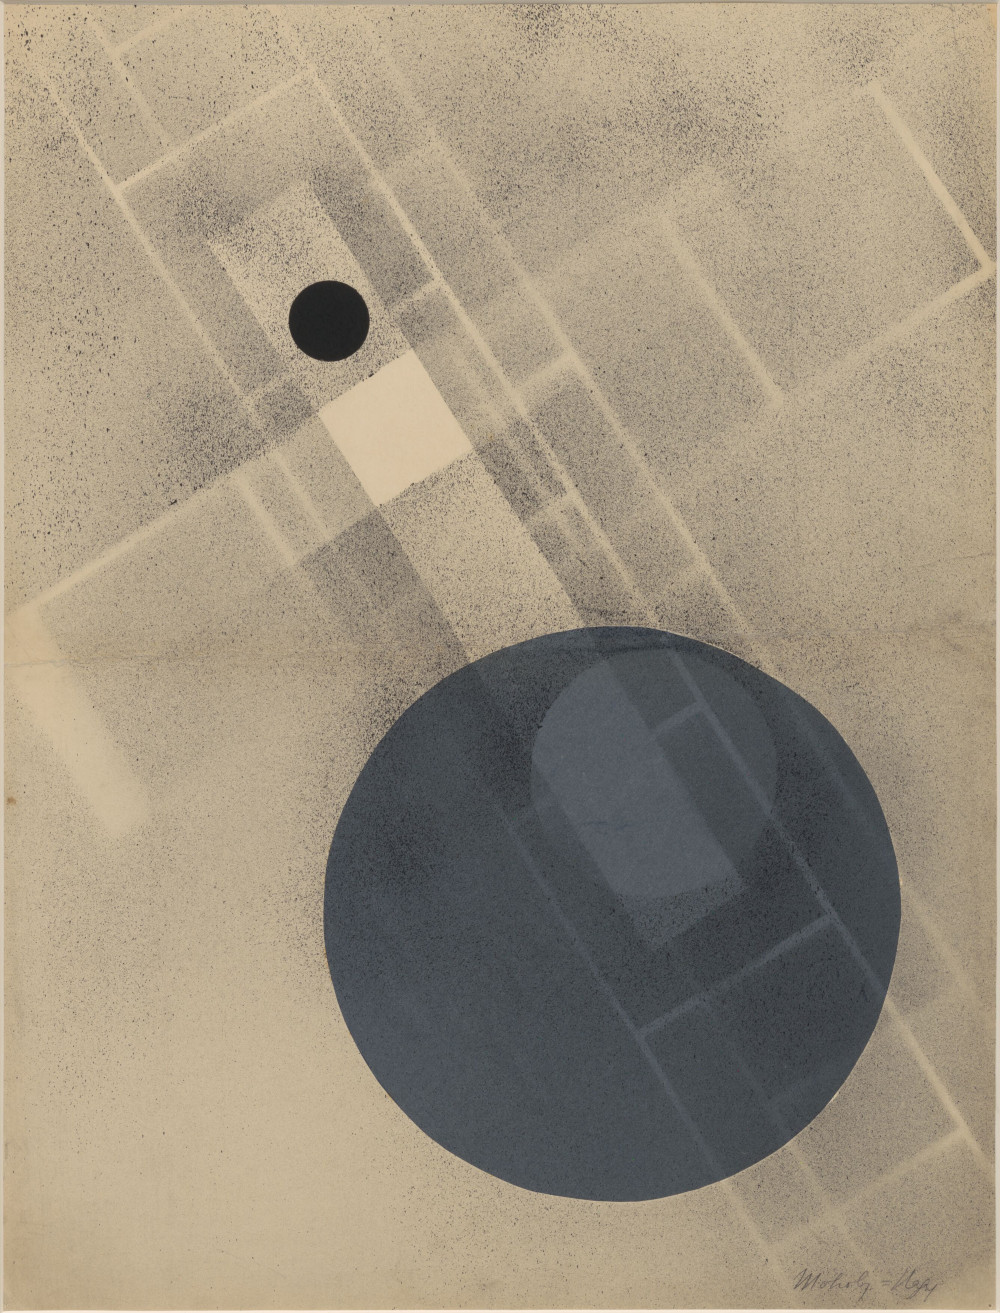 László Moholy-Nagy, Untitled, 1926/1928. Collage and sprayed paint on paper 64 x 49 cm / 25 1/4 x 19 1/4 in (framed) © the Estate of László Moholy-Nagy / Artists Rights Society (ARS), New York / VG Bild-Kunst, Bonn. Courtesy of the Estate of László Moholy-Nagy